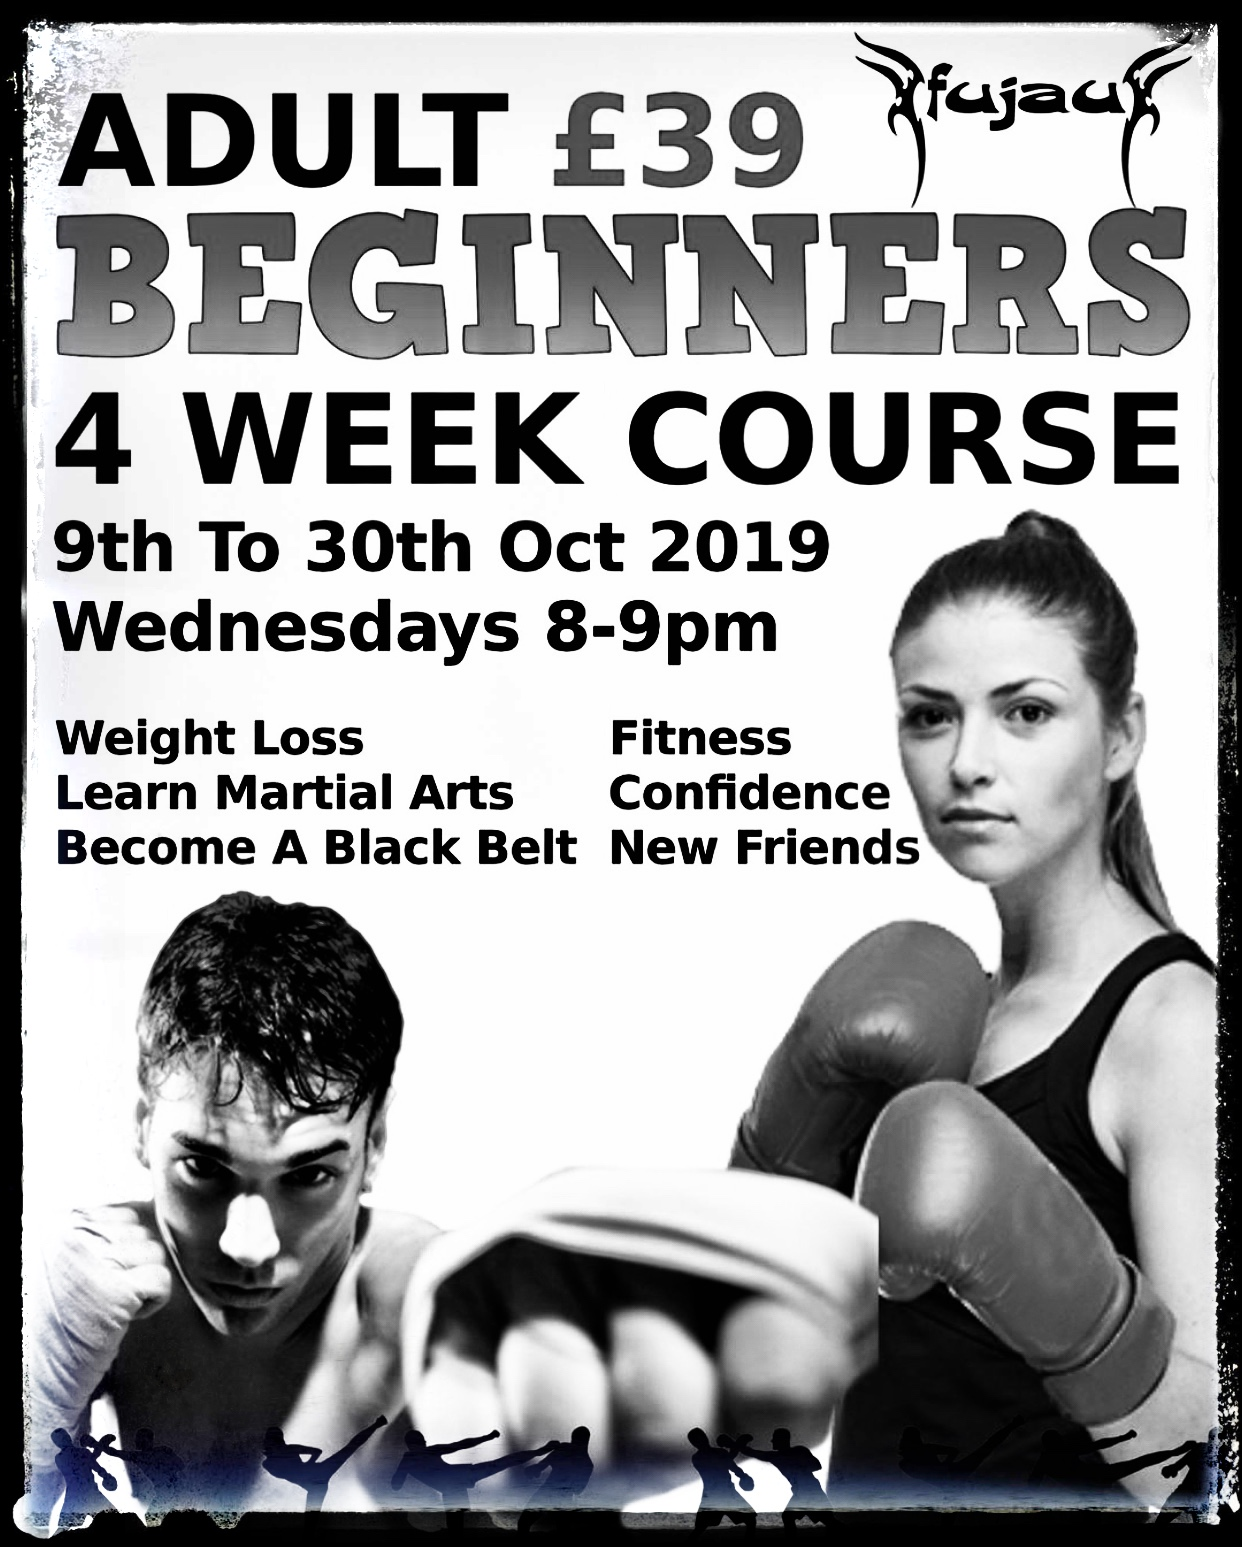 Beginner Kickboxing / Muay Thai / Beginner Martial Arts Course in Slough Starting 9th Oct 2019